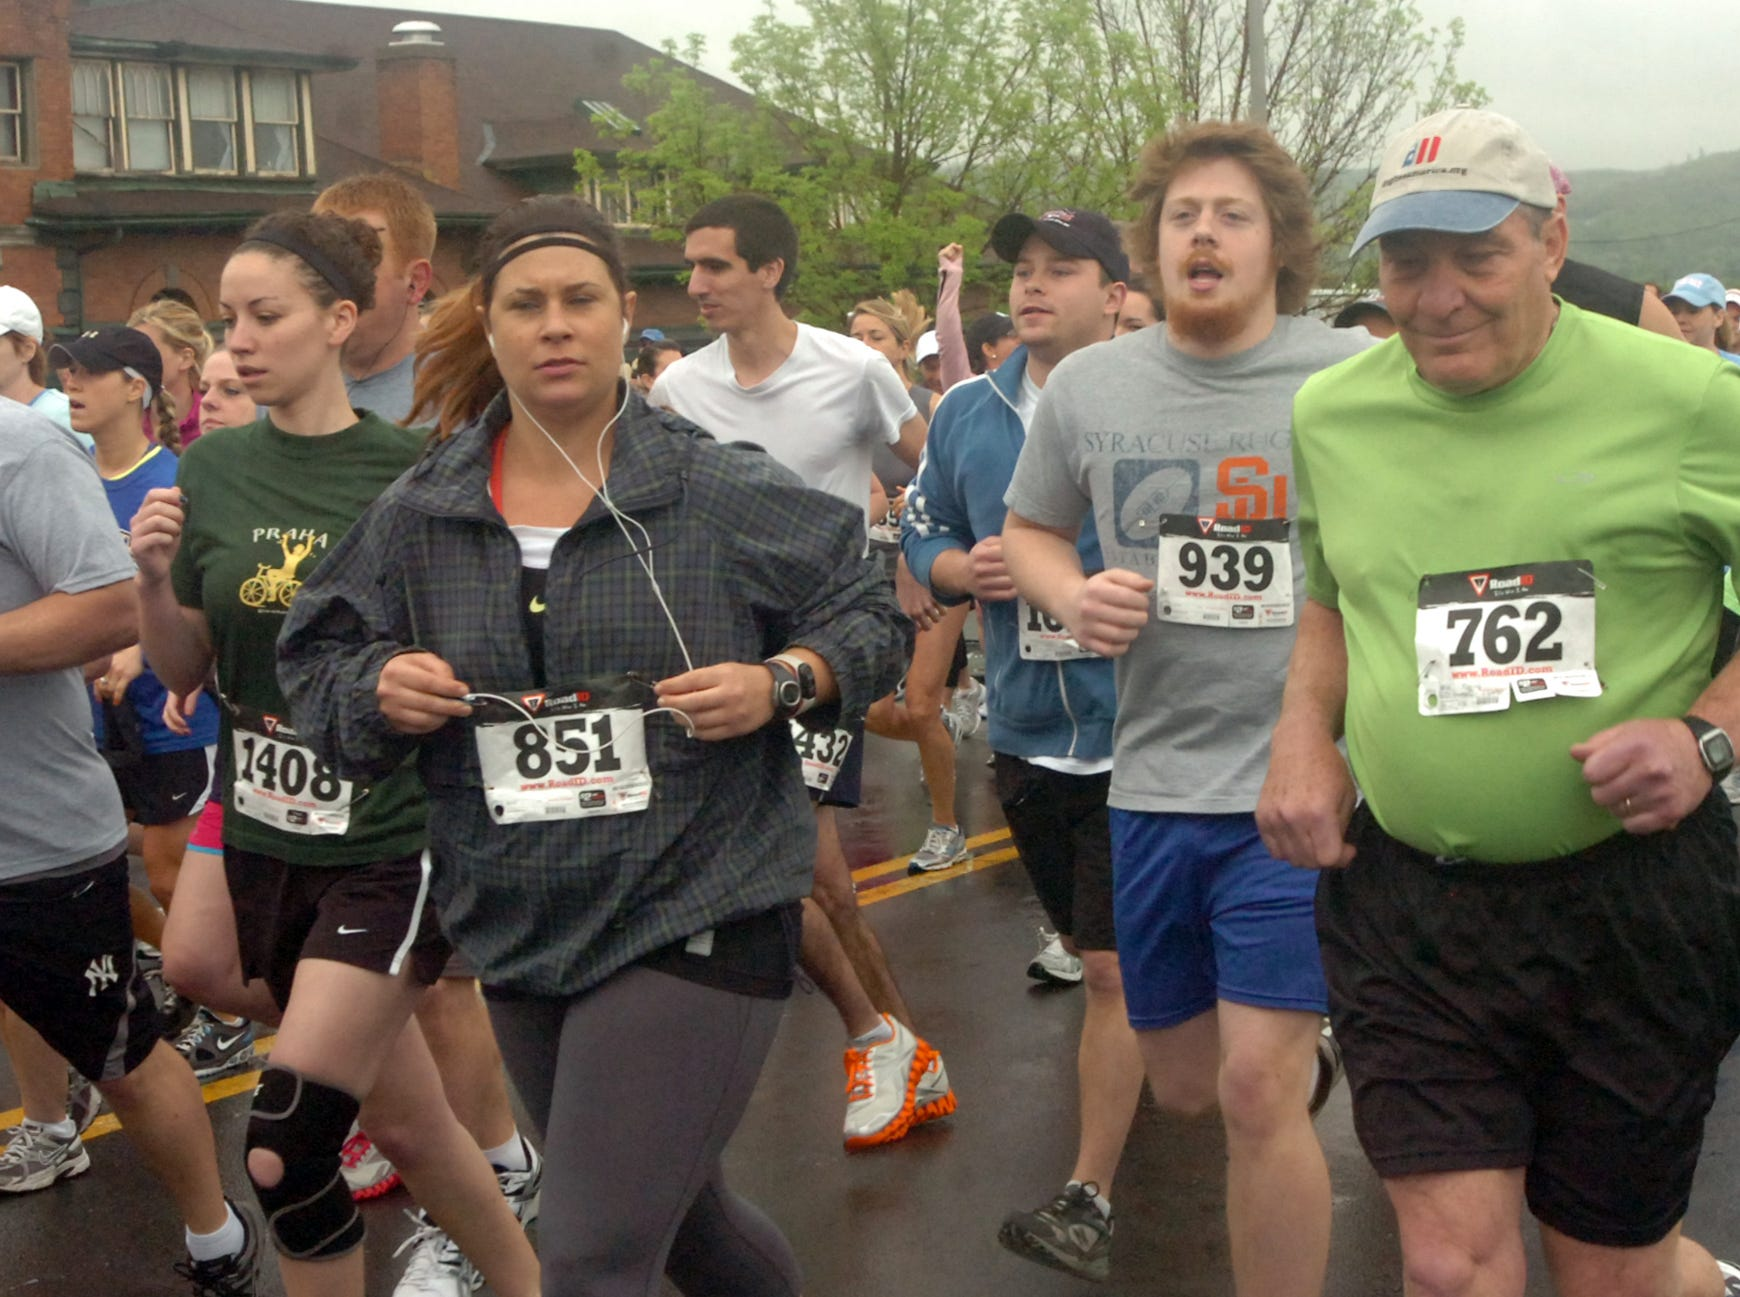 2011: Don Carle, Melissa Tabeek, Laura Link, Logan McAvoy and Douglas Kerr (left to right) leave the starting line on Lewis Street outside NYSEG Stadium for the 5K run in Greater Binghamton Bridge Run on Sunday. Roughly 600 runners ran in the inaugural race on a course through streets and over bridges in downtown Binghamton.